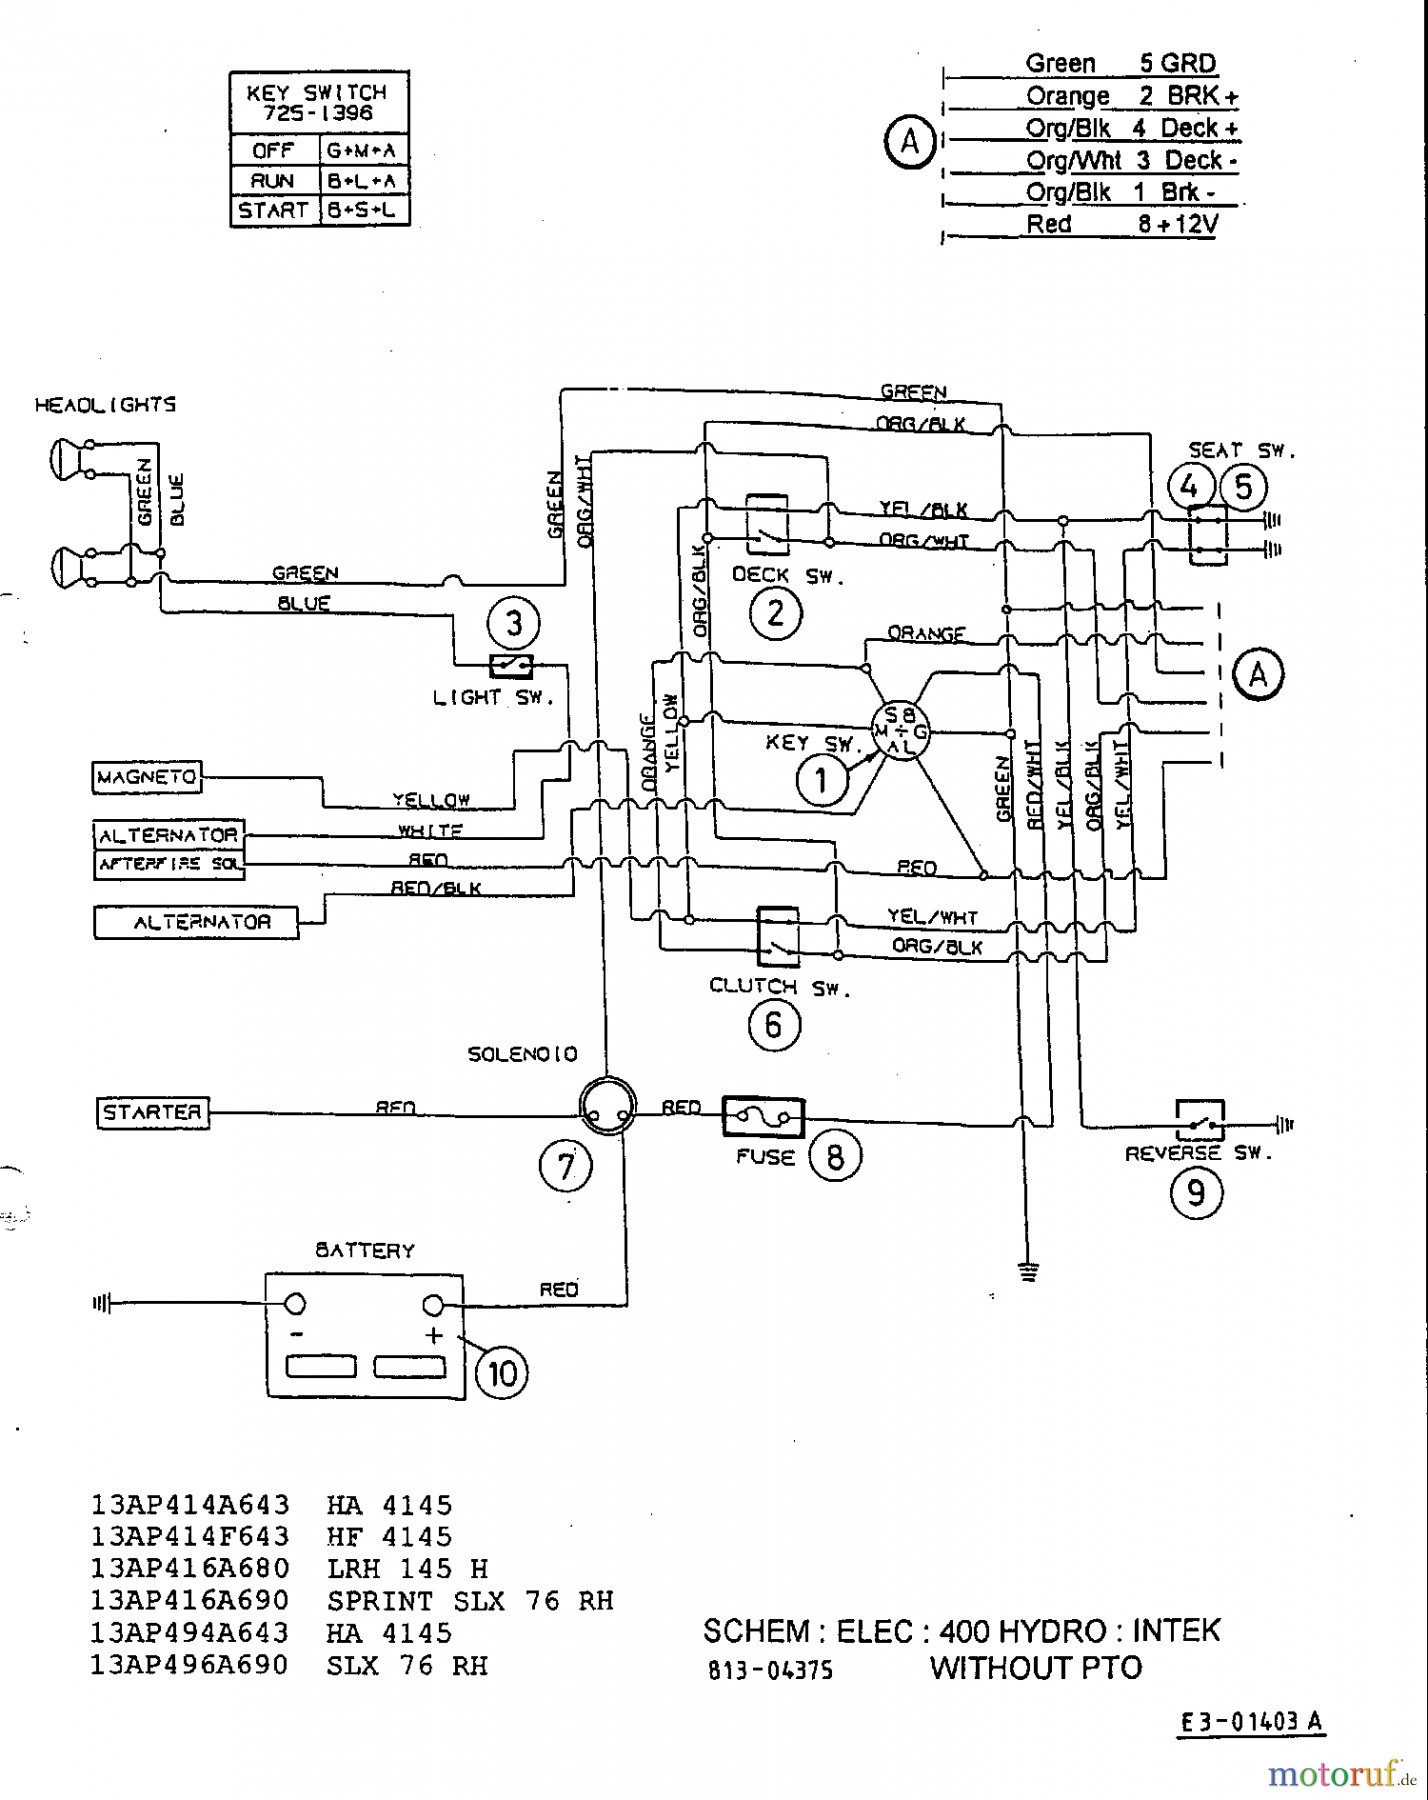 Yardman Bx G Wiring Diagram on